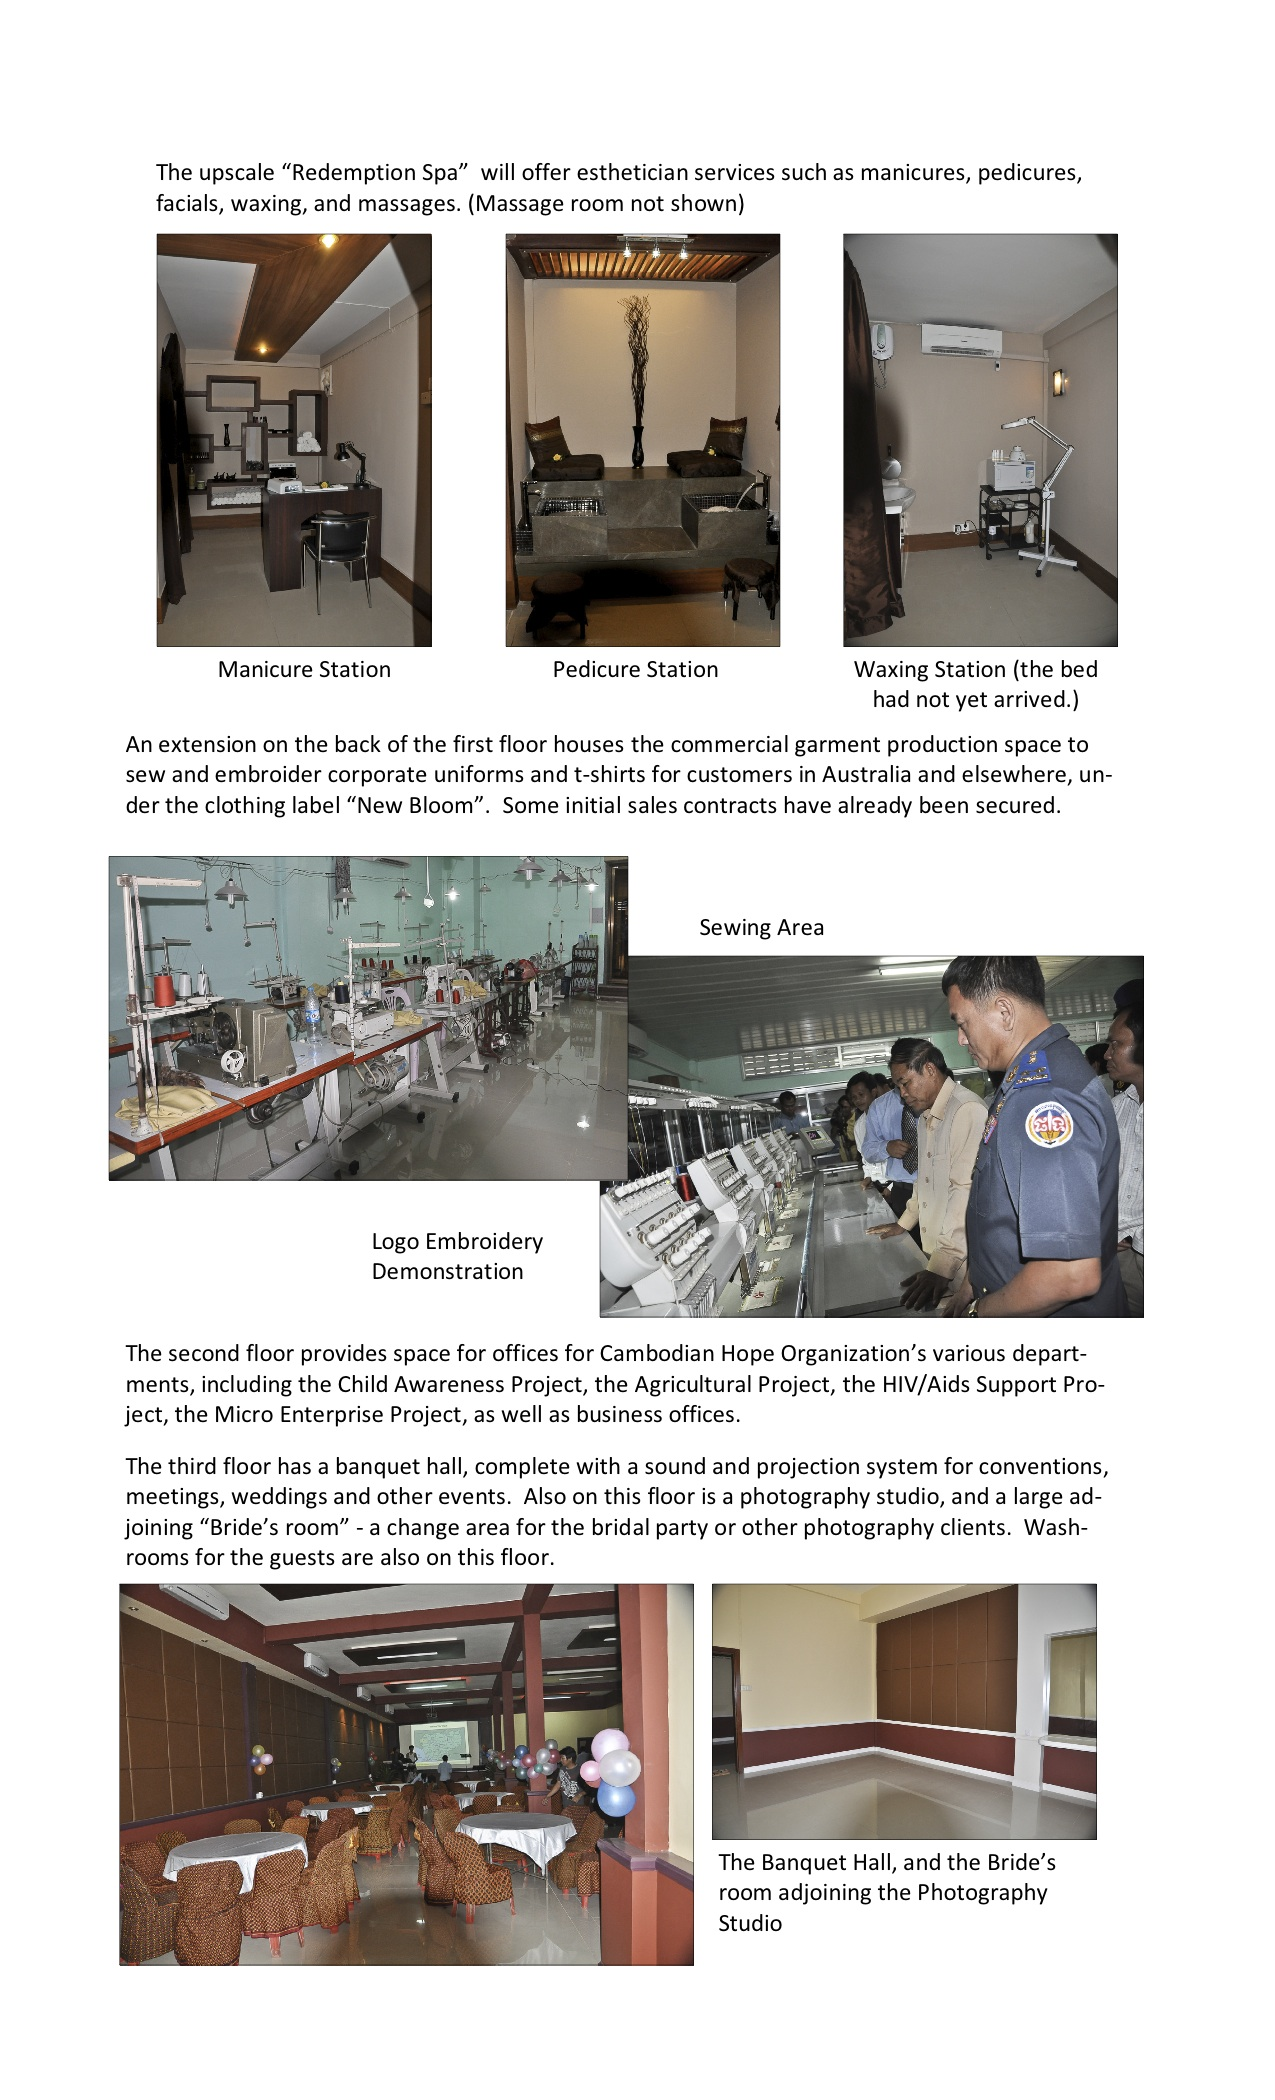 Cambodia-Hope-Transformation-Center-Completed-Project-Report1.jpg